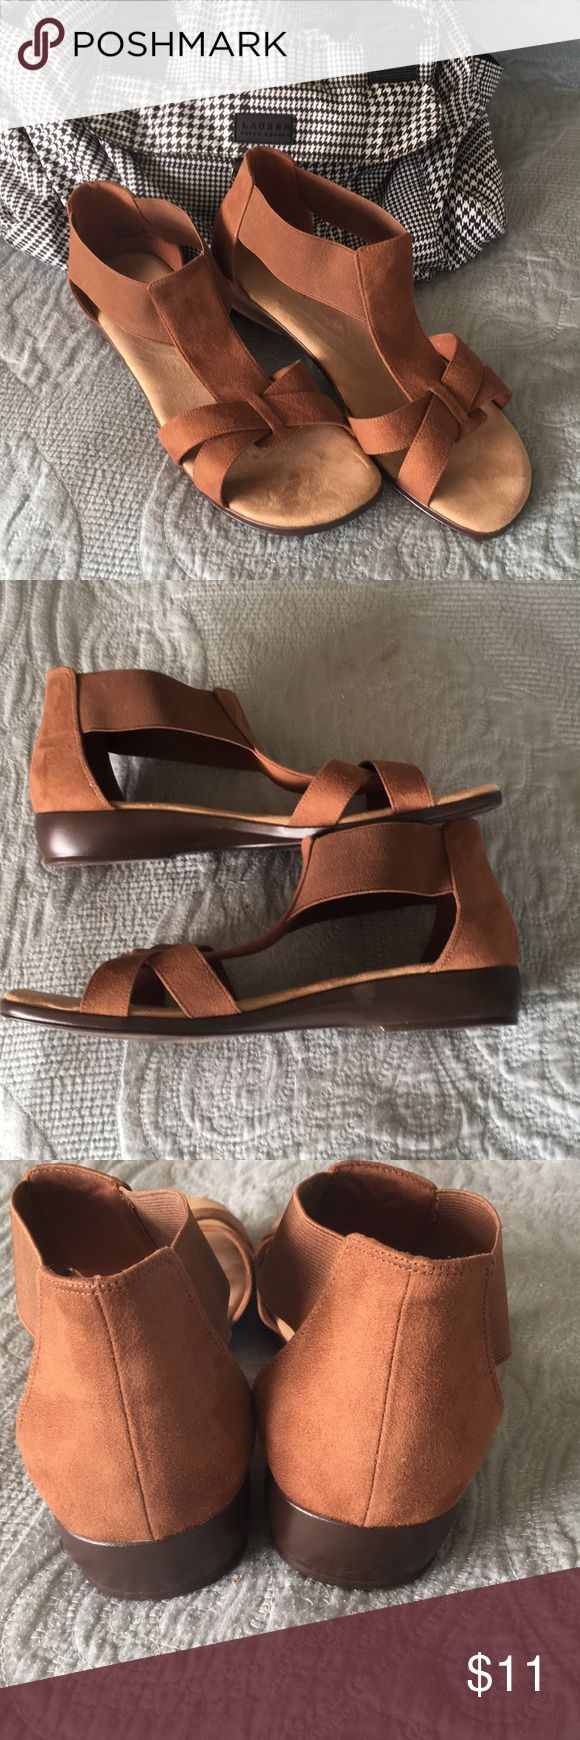 Cute Sandals Sz 10W Brown faux suede. Worn 1 time extremely comfortable but I ended up not caring for the elastic My Loss your Gain 🌞. Approx 1 inch heel, slip on style, padded foot bed. Flattering on feet with a gladiator vibe! I have other 10W in my closet make a bundle and I will offer a nice $ 💋 Comfort Plus Shoes Sandals